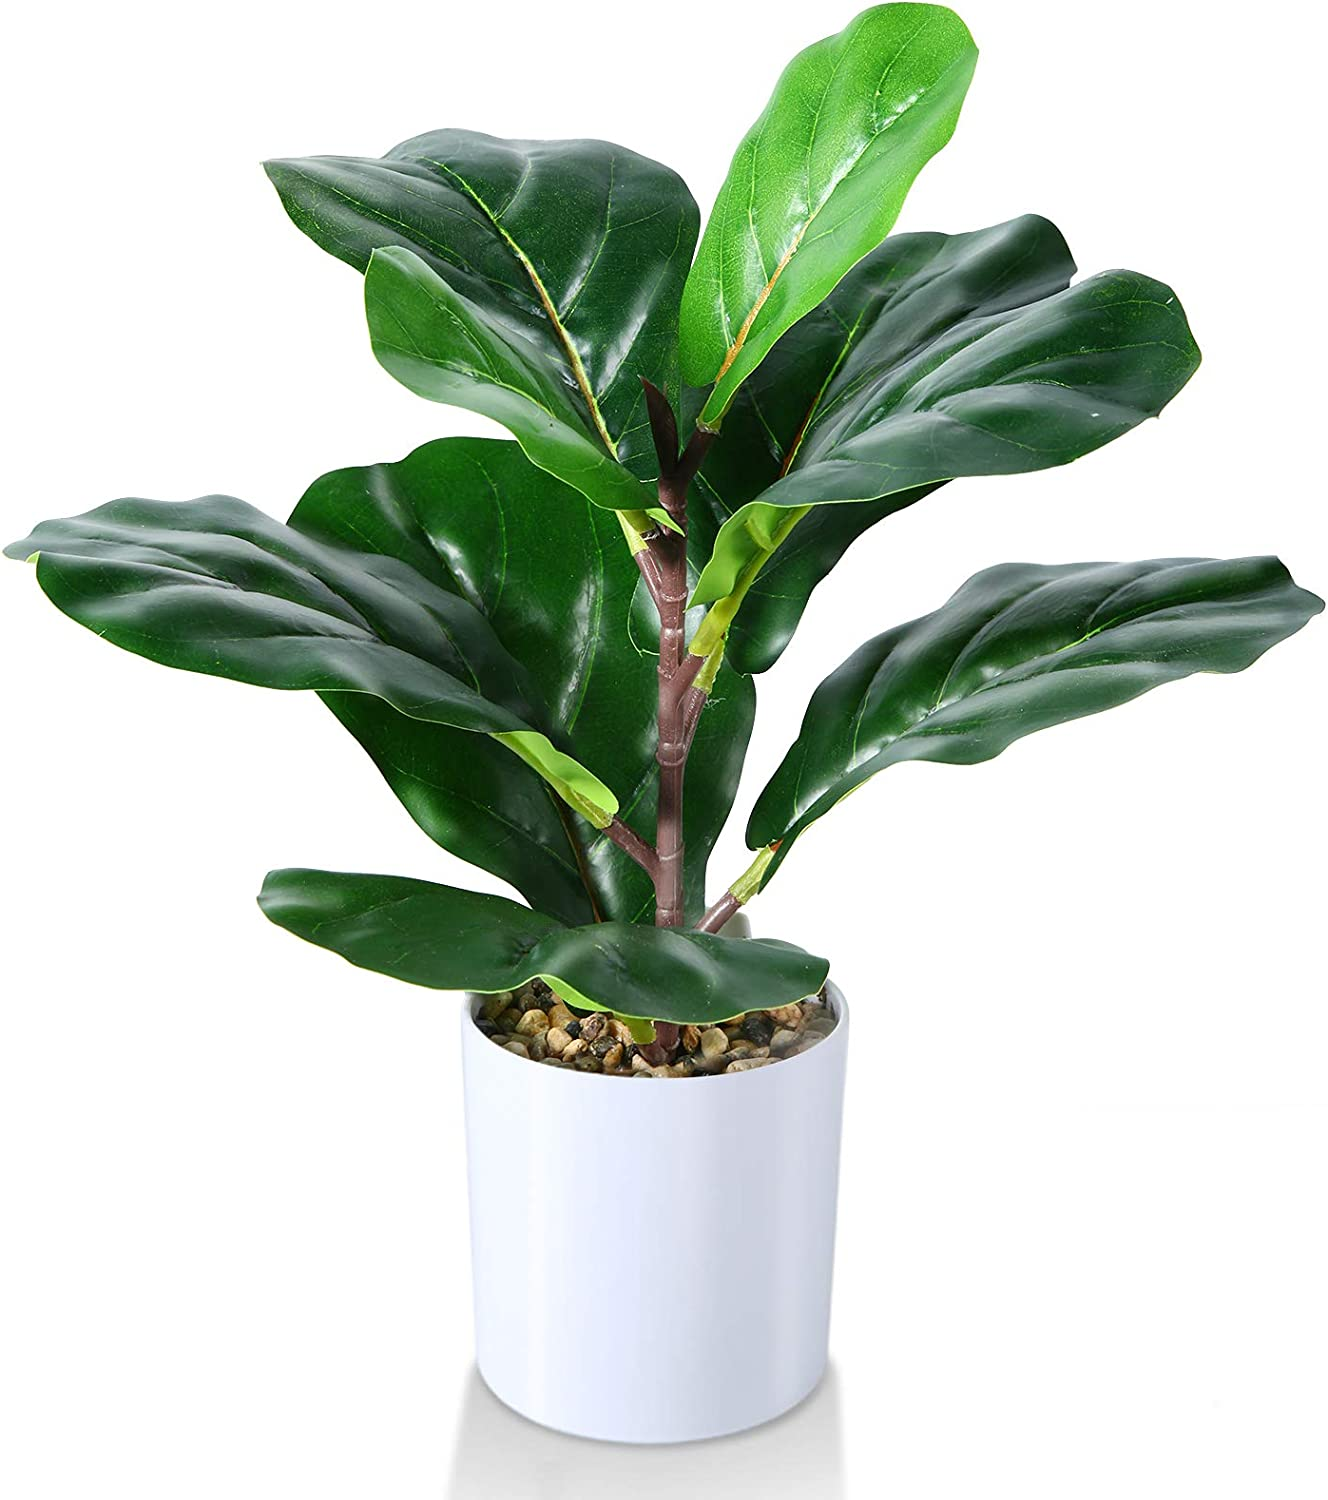 Kazeila Small Artificial Fiddle Leaf Fig Tree 16 Inch Fake Ficus Lyrata Plant,Faux Desk Plant in Pot for for Indoor Outdoor Home Office Any Room Decor,Perfect Housewarming Gift